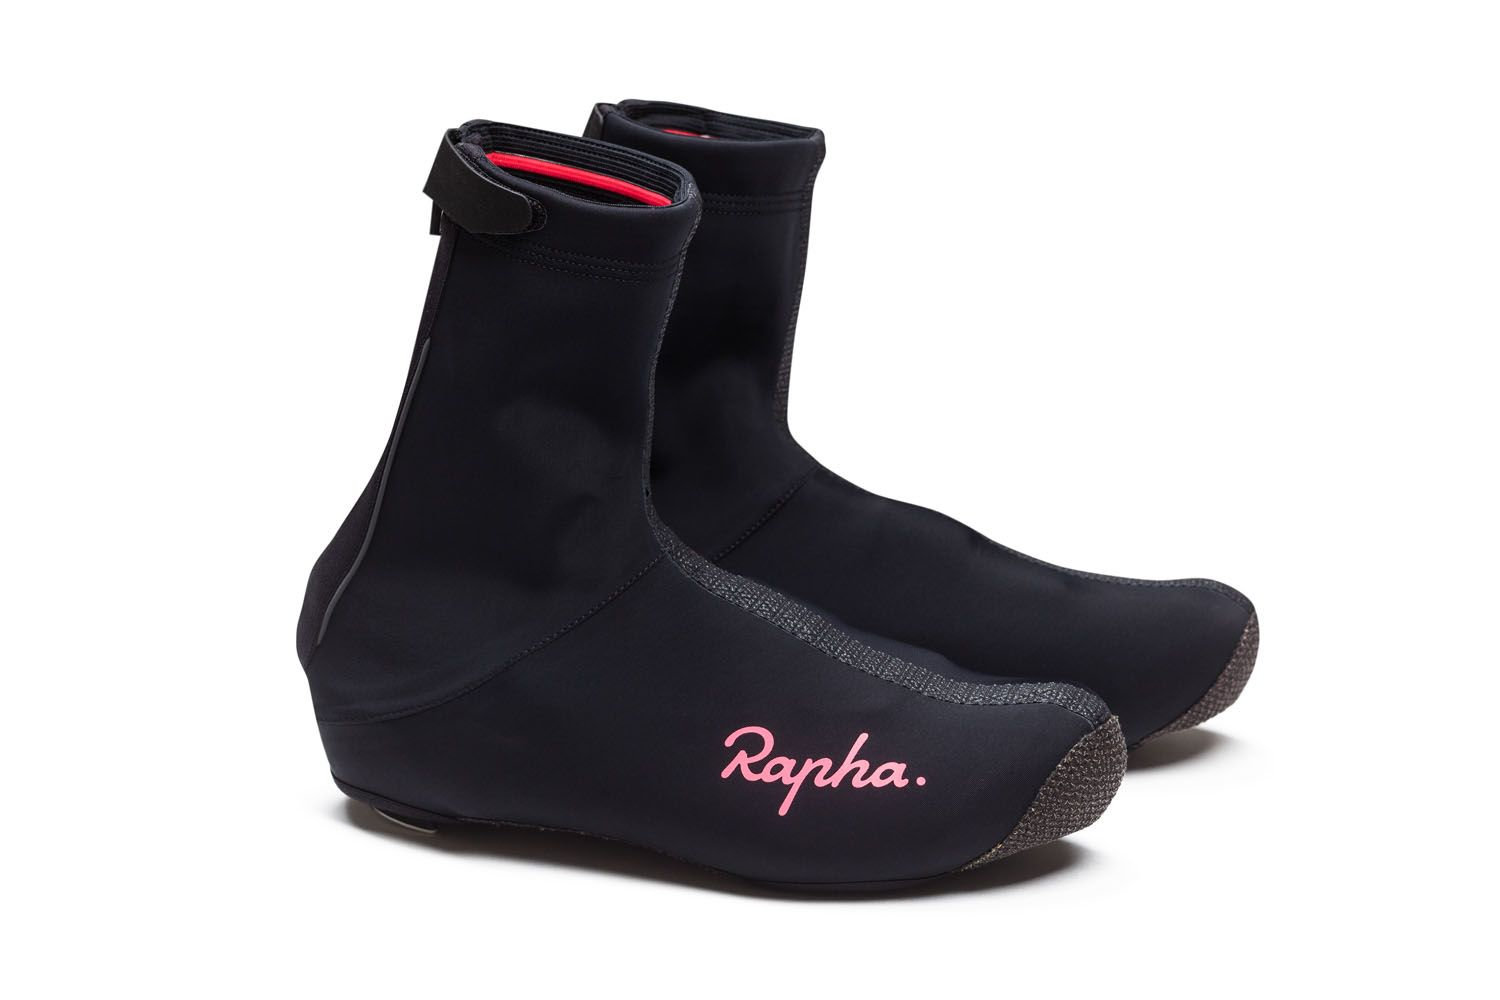 Rapha-Deep-Winter-Overshoe-Black-Pink